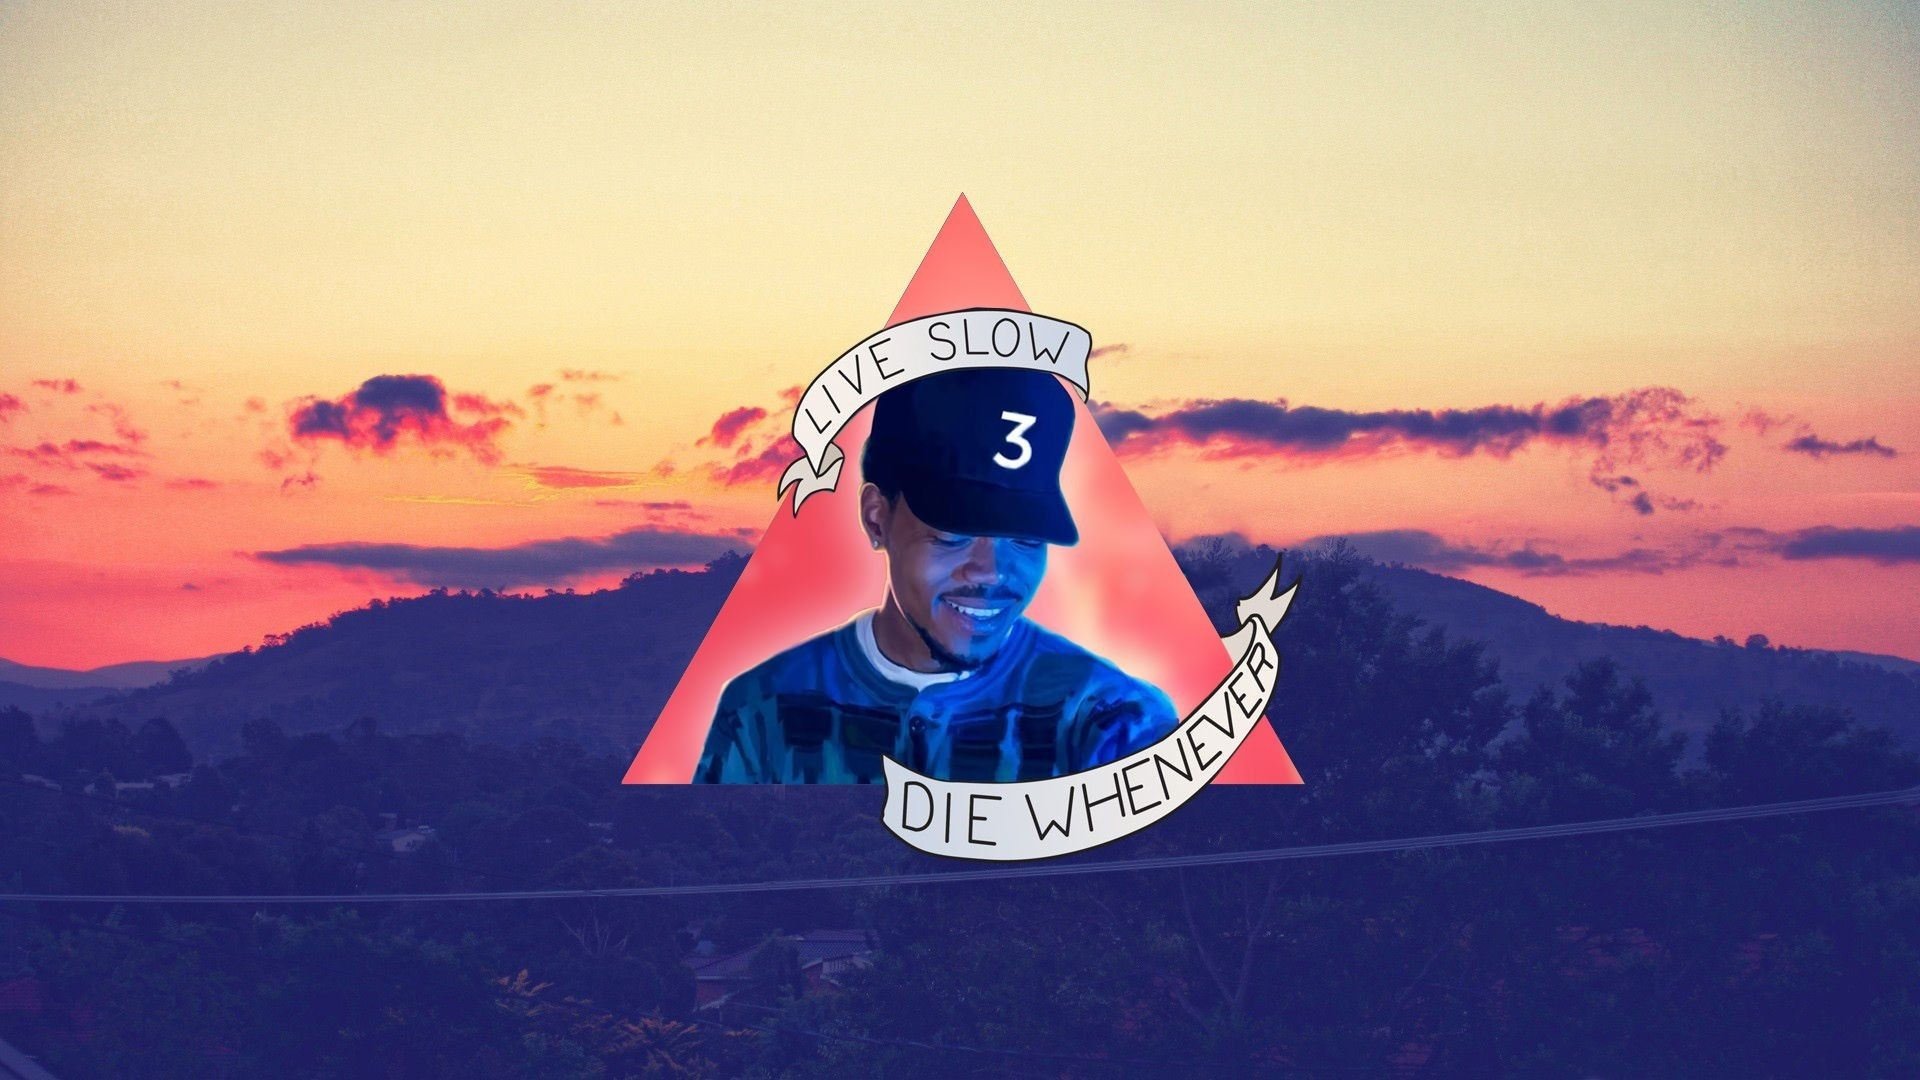 chance the rapper wallpaper ·① download free full hd wallpapers for